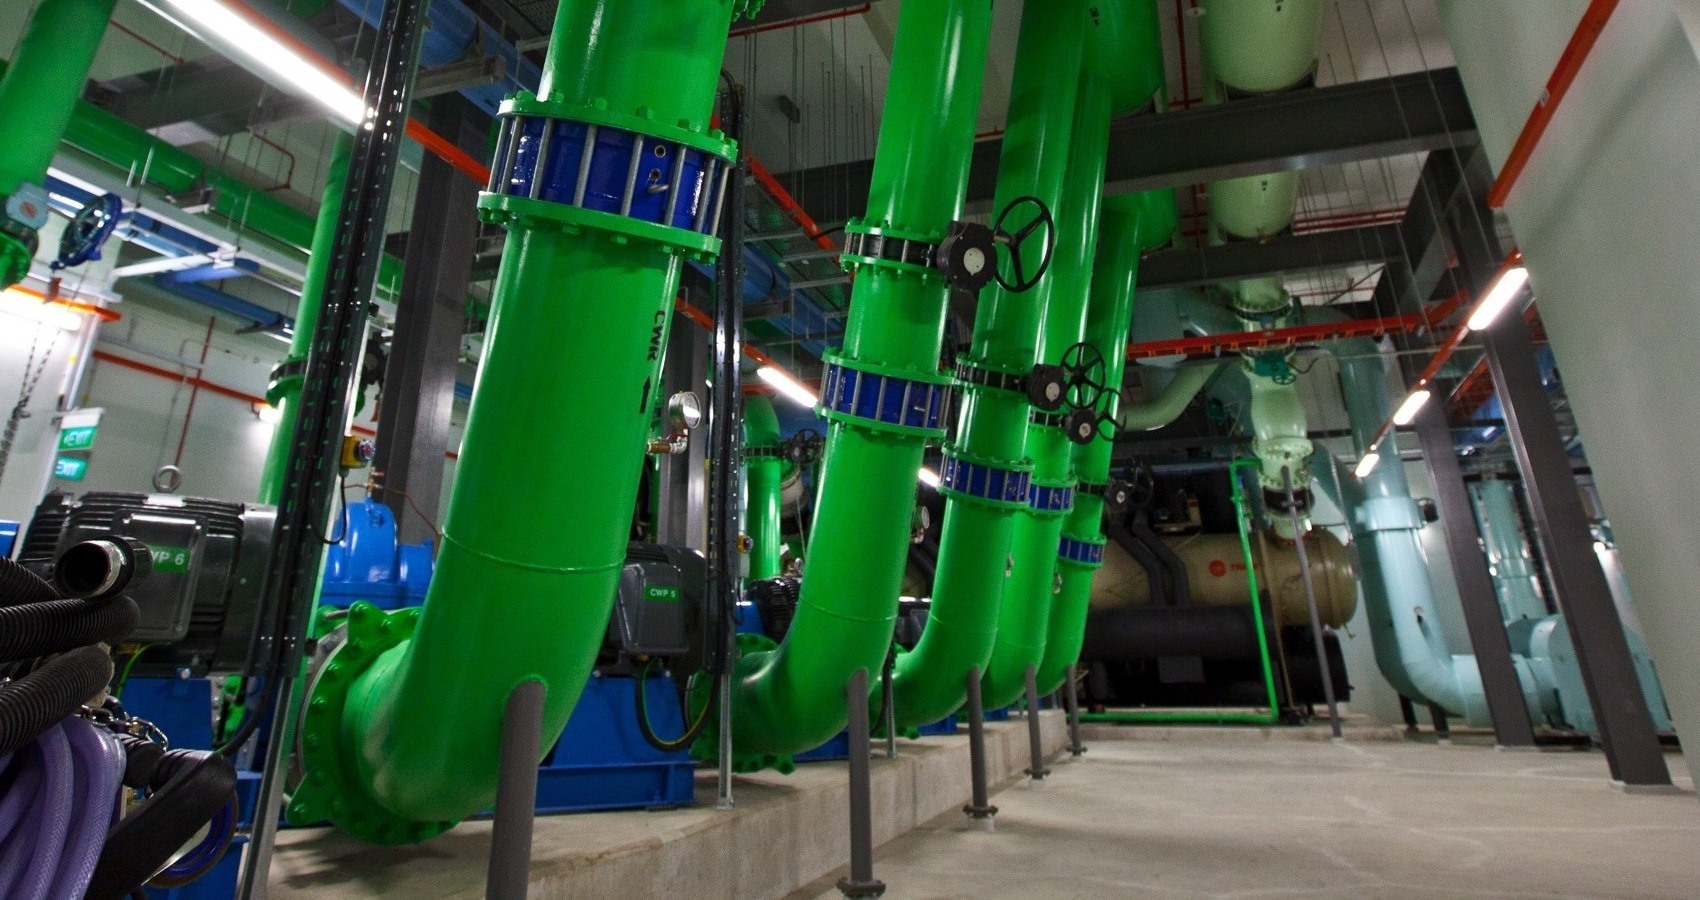 Green pipes 1700x900 -Ananta